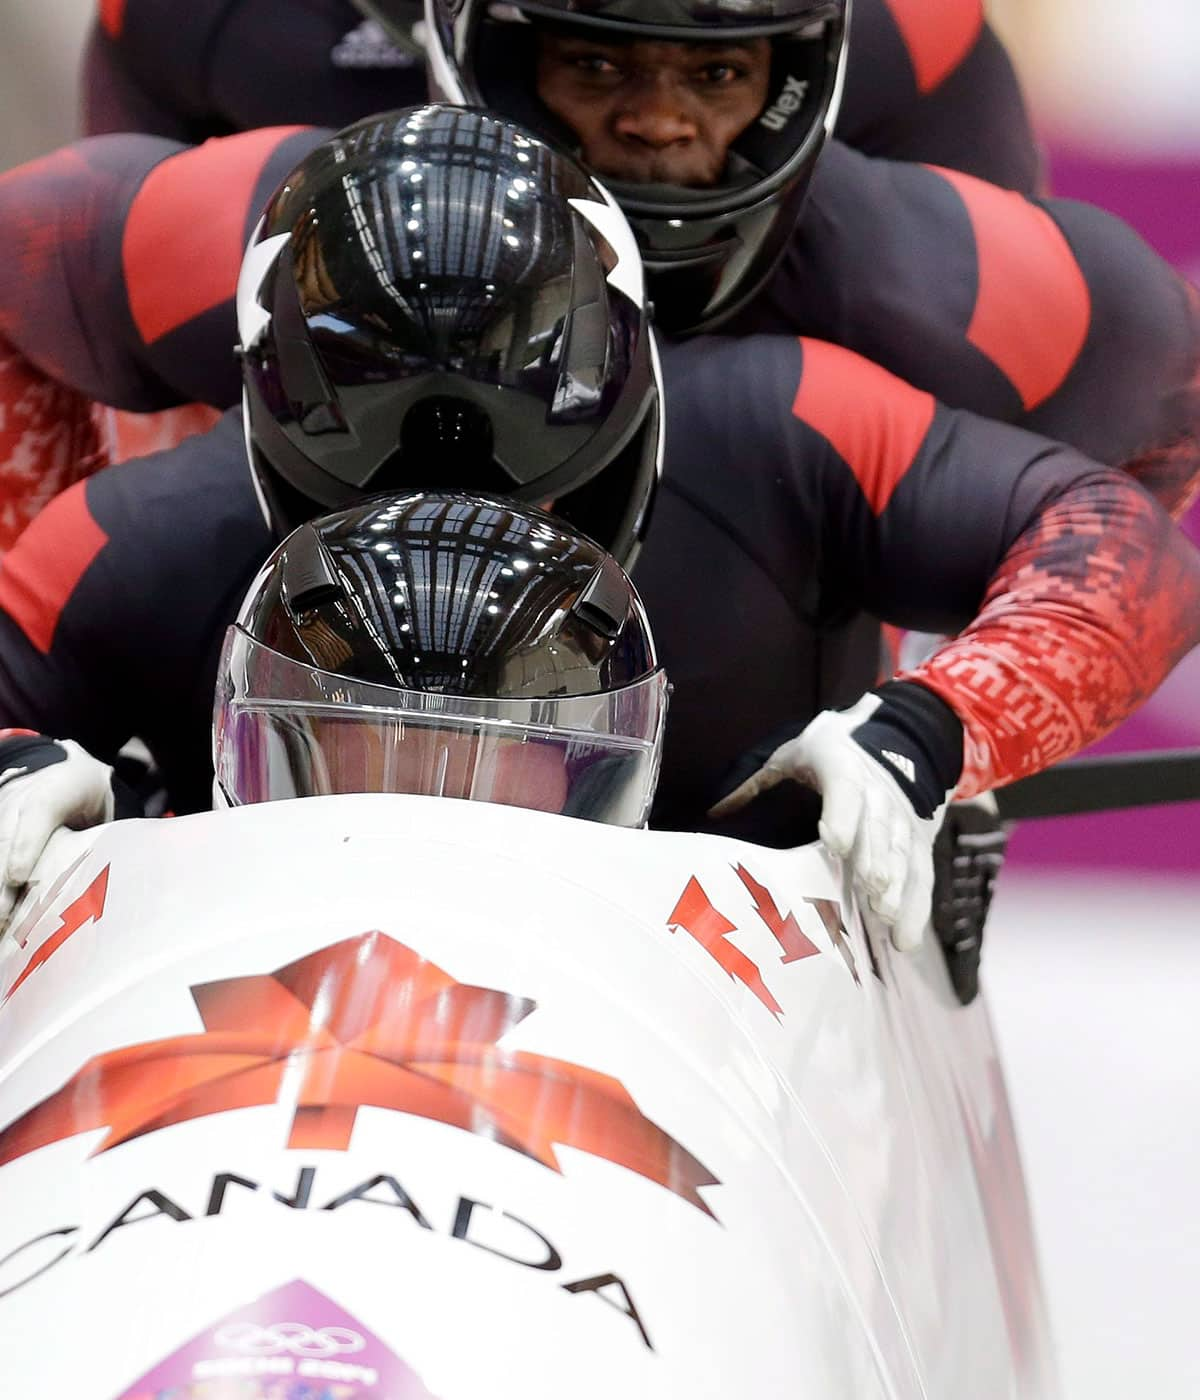 Lascelles Brown: I was always meant to slide for Canada